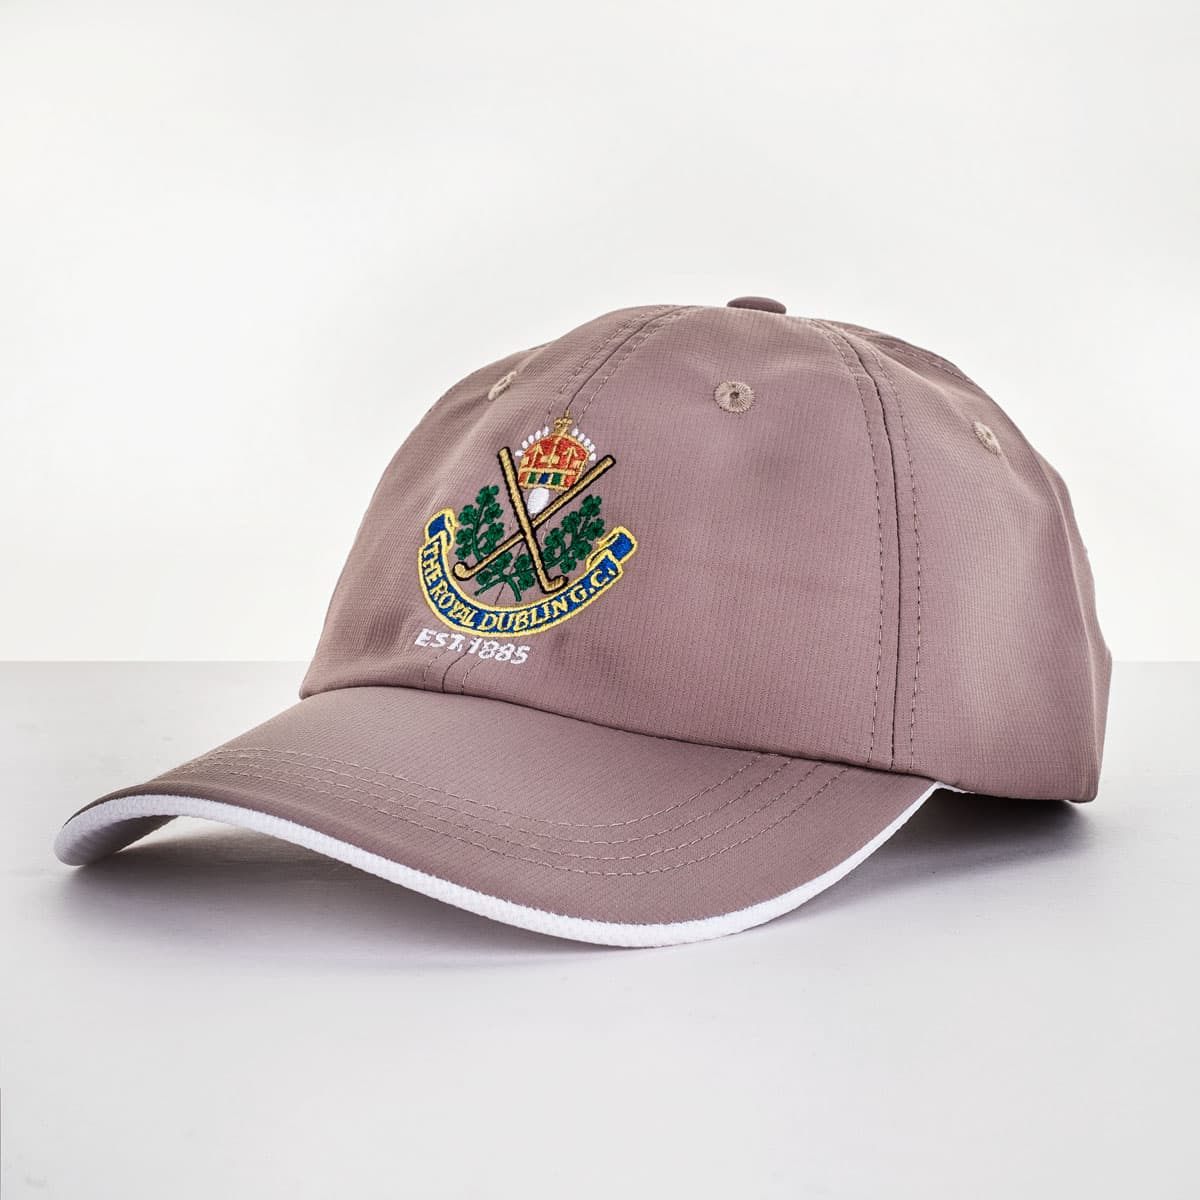 Ahead limited edition hat €29.95